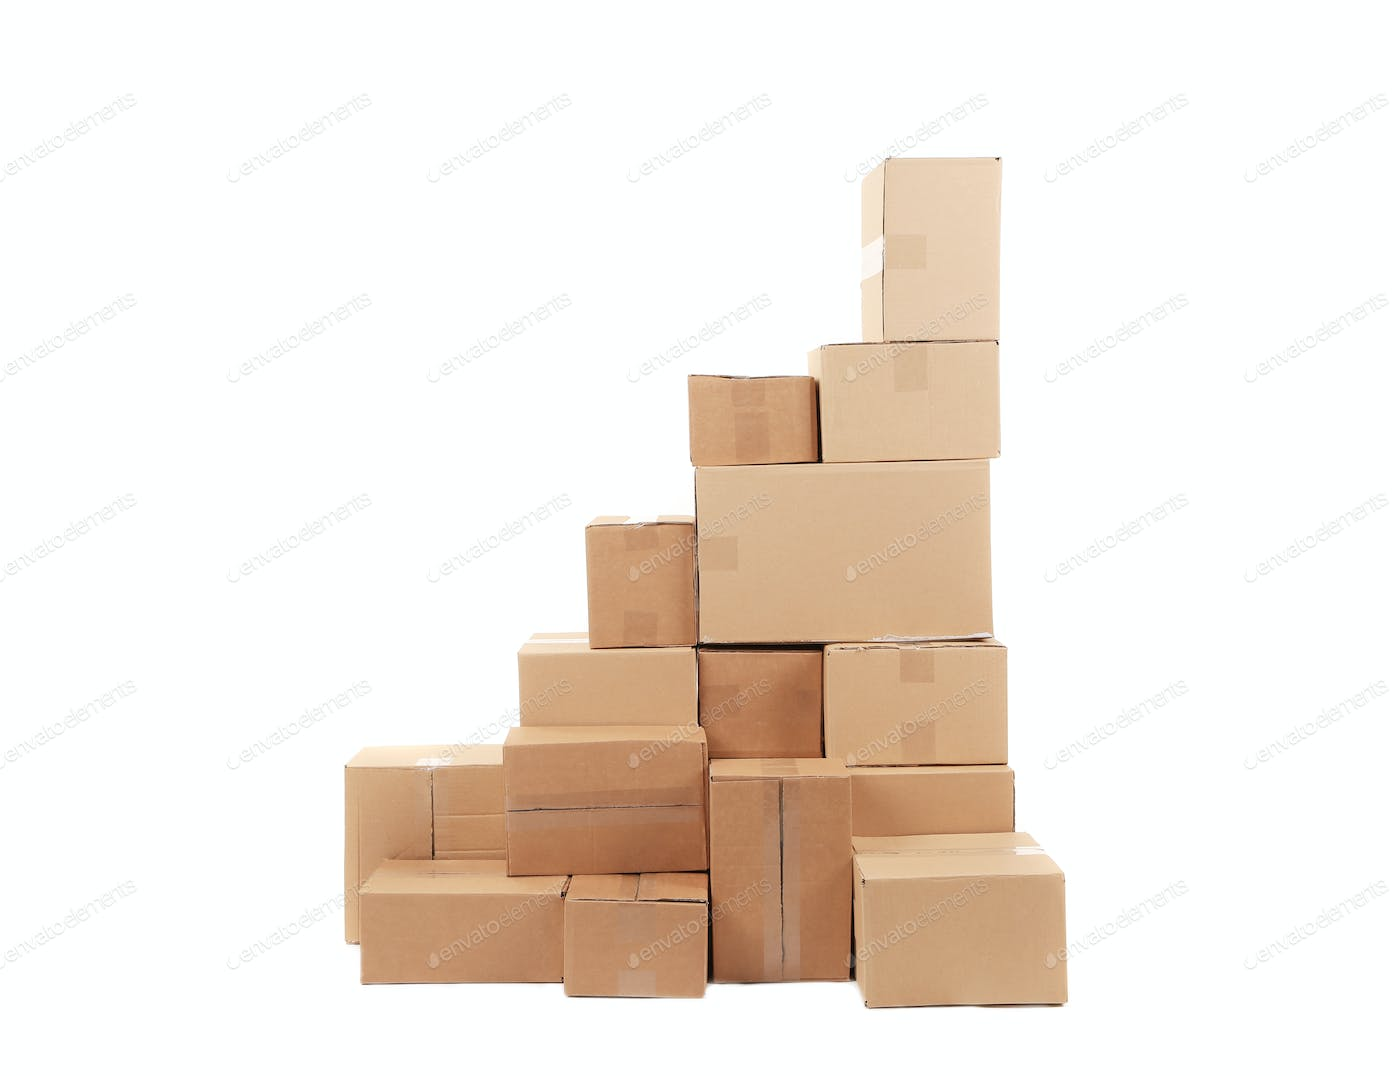 Stacks Of Cardboard Boxes Photo By Indigolotos On Envato Elements